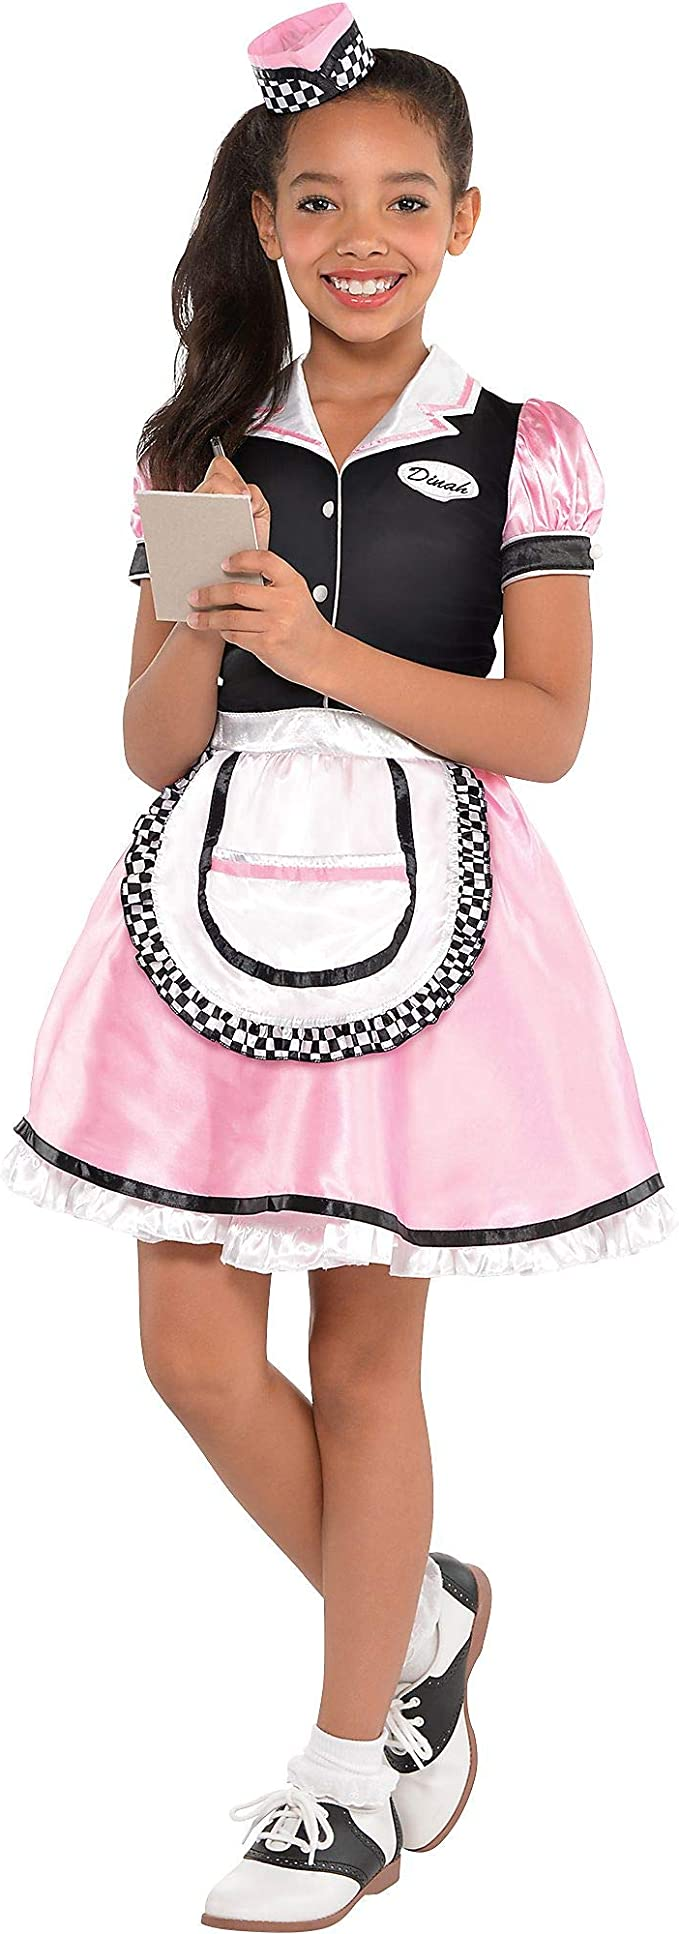 1950s Costumes- Poodle Skirts, Grease, Monroe, Pin Up, I Love Lucy Amscan Dinah Girl Child 50S Costume $28.93 AT vintagedancer.com